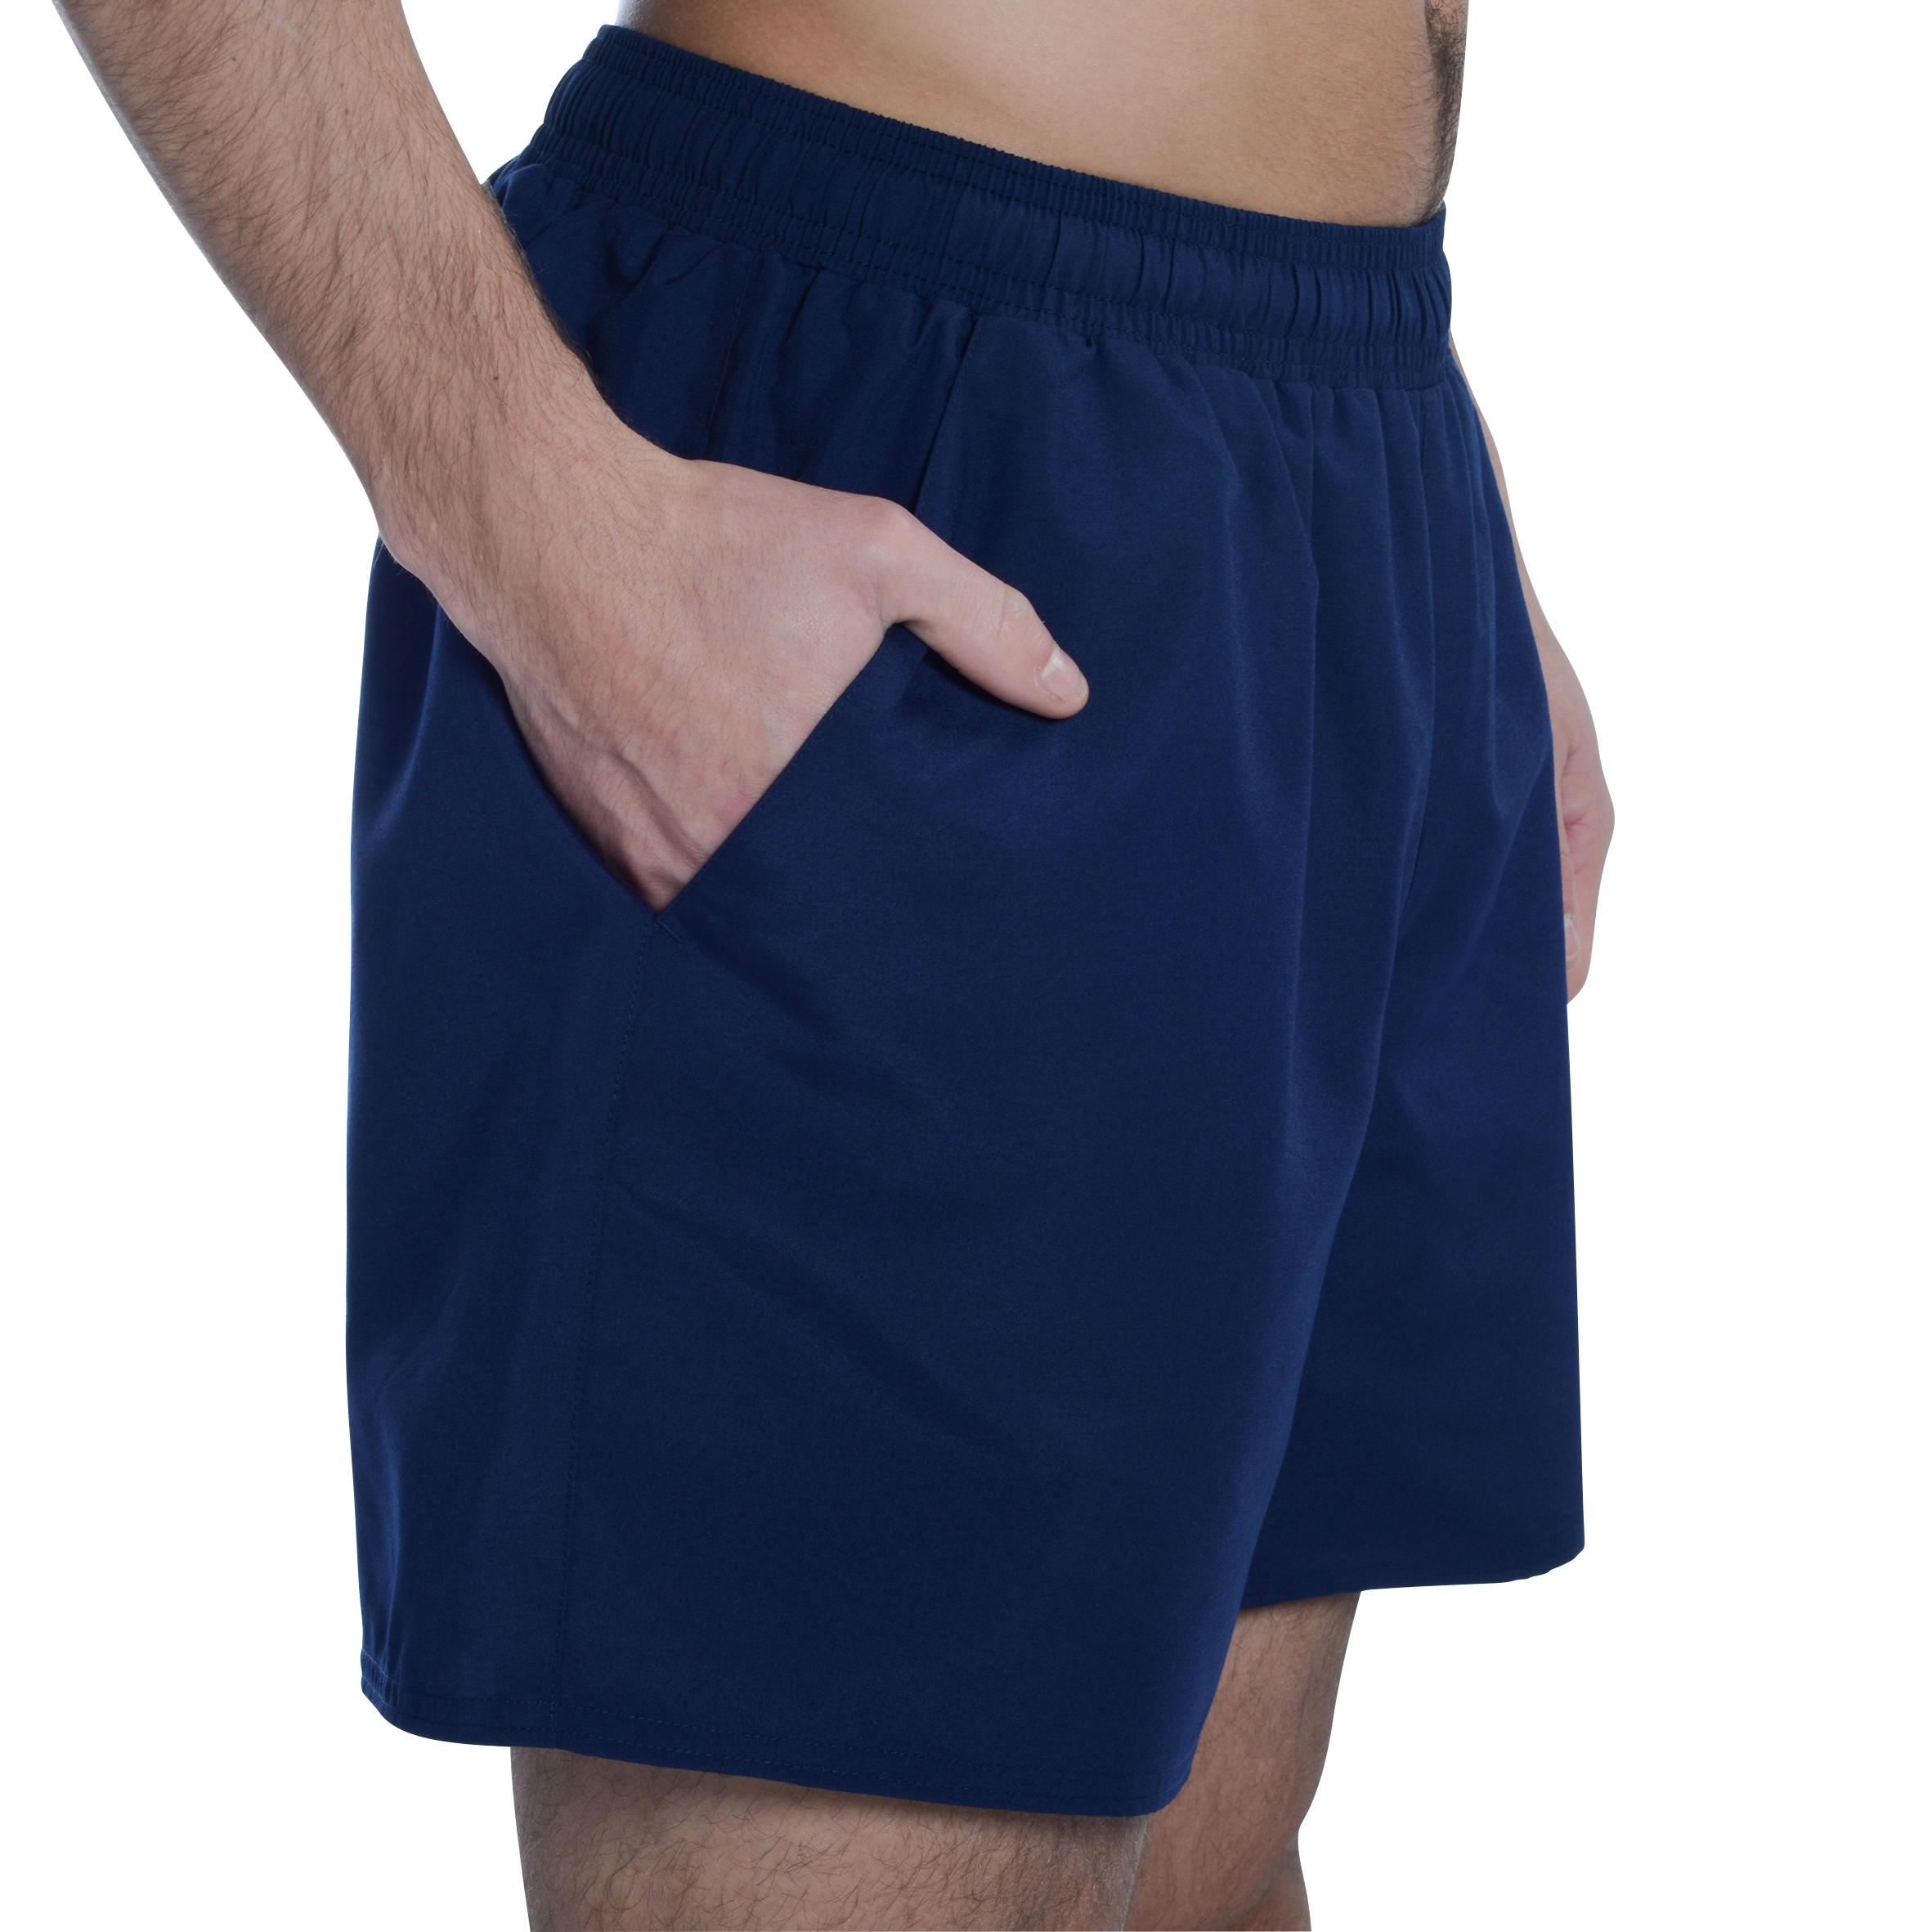 FST100 Fitness Cardio Shorts - Navy Blue